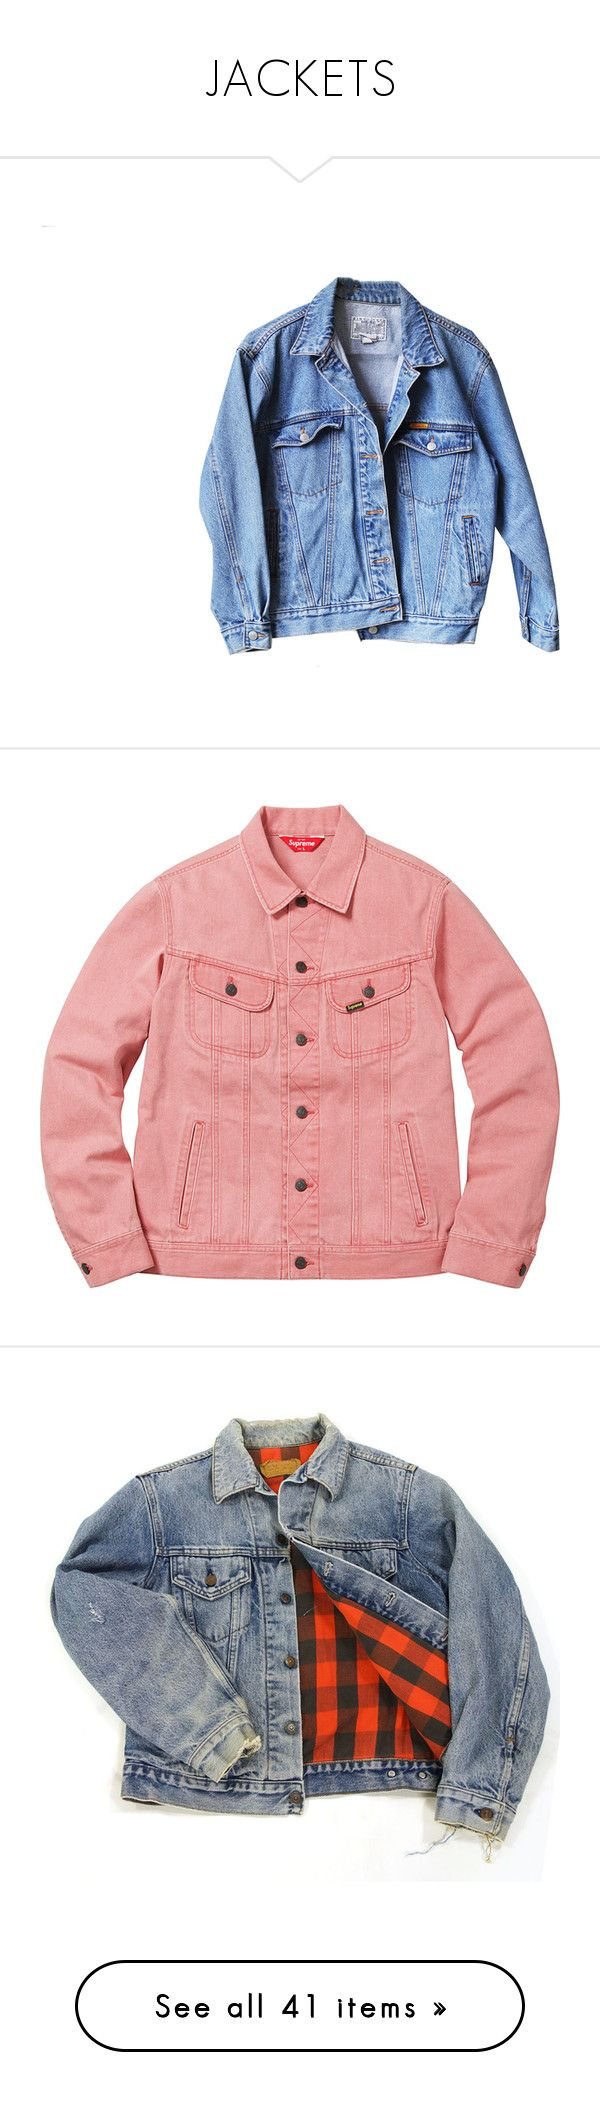 """""""JACKETS"""" by diamonddolll ❤ liked on Polyvore featuring outerwear, jackets, tops, denim jacket, boyfriend jacket, levi jacket, jean jacket, boyfriend jean jacket, flannel lined jean jacket and trucker jacket"""